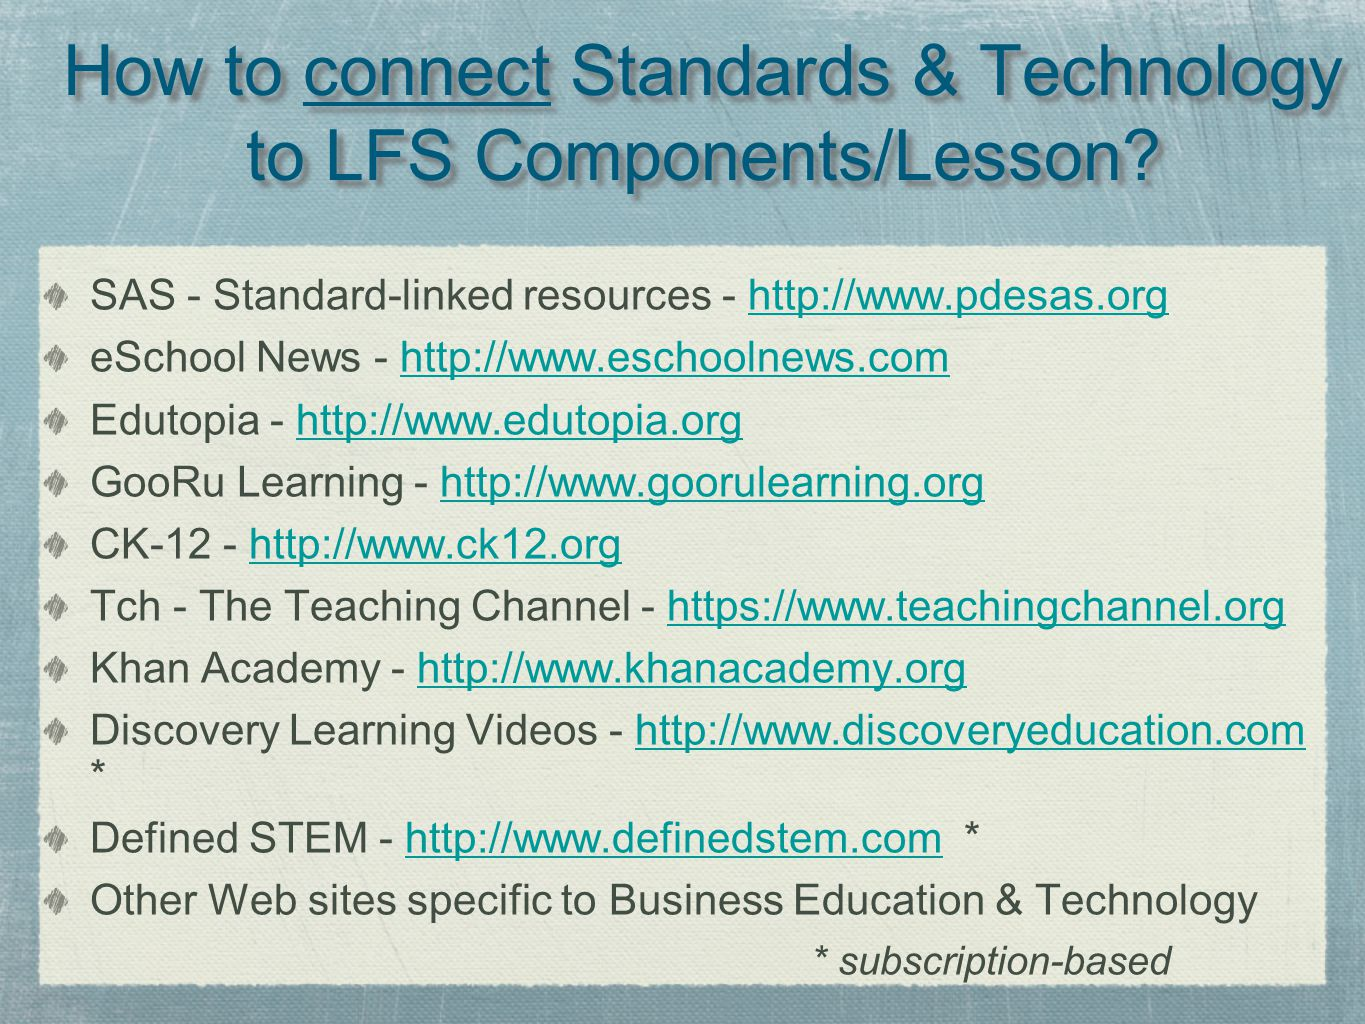 How to connect Standards & Technology to LFS Components/Lesson.